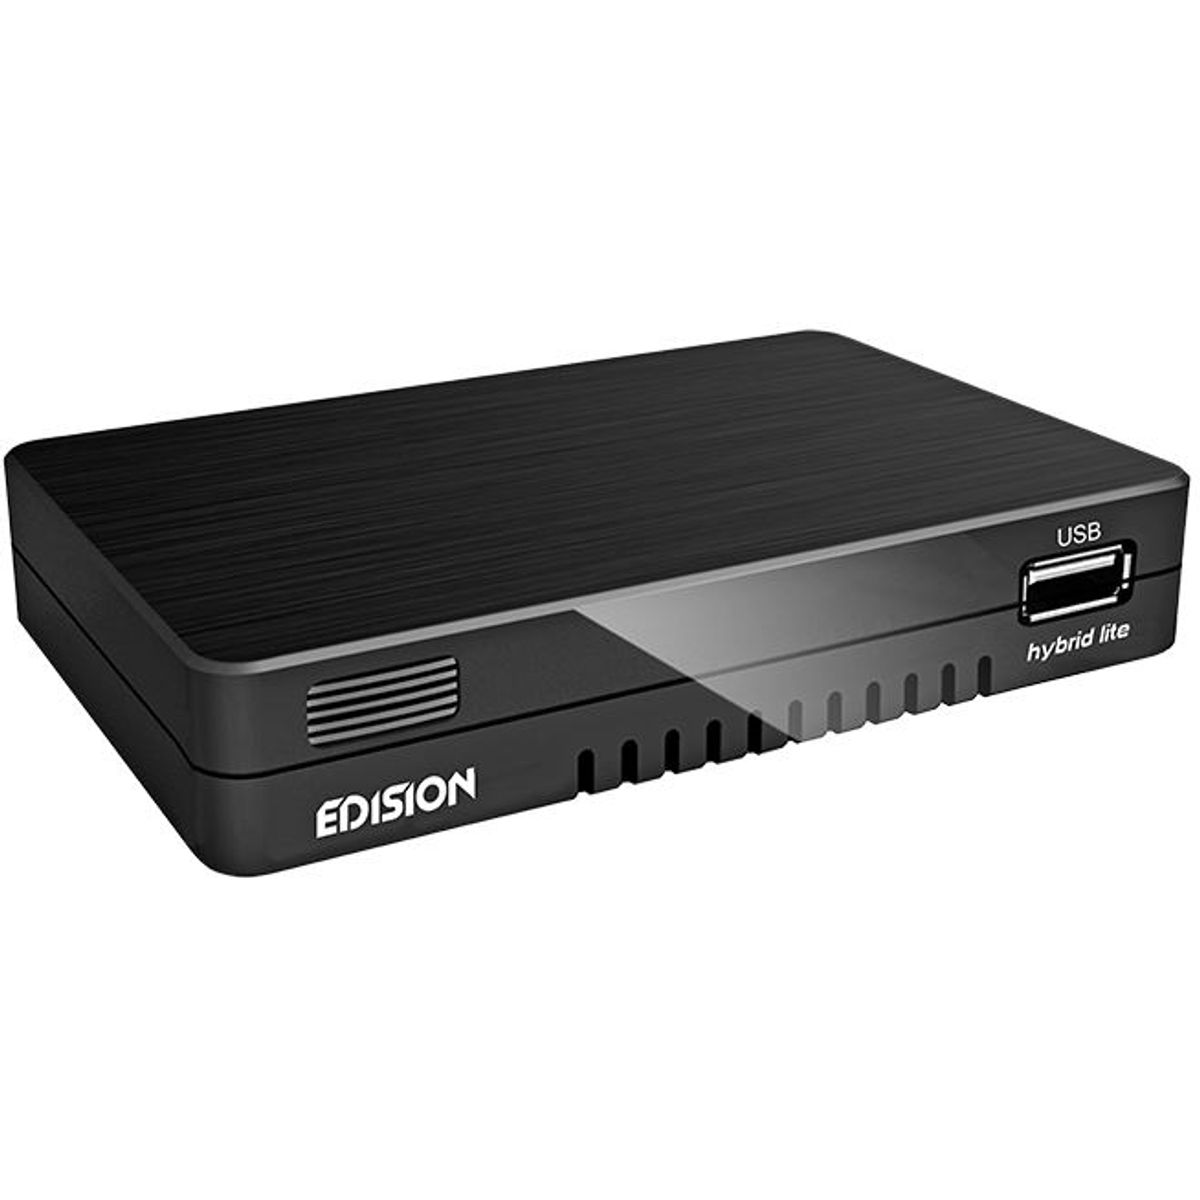 Edision progressiv hybrid lite DVB-C Kabelreceiver für digitales Kabel-Fernsehen (Full-HD, HDMI, USB 2.0, Mediaplayer, WLAN optional)